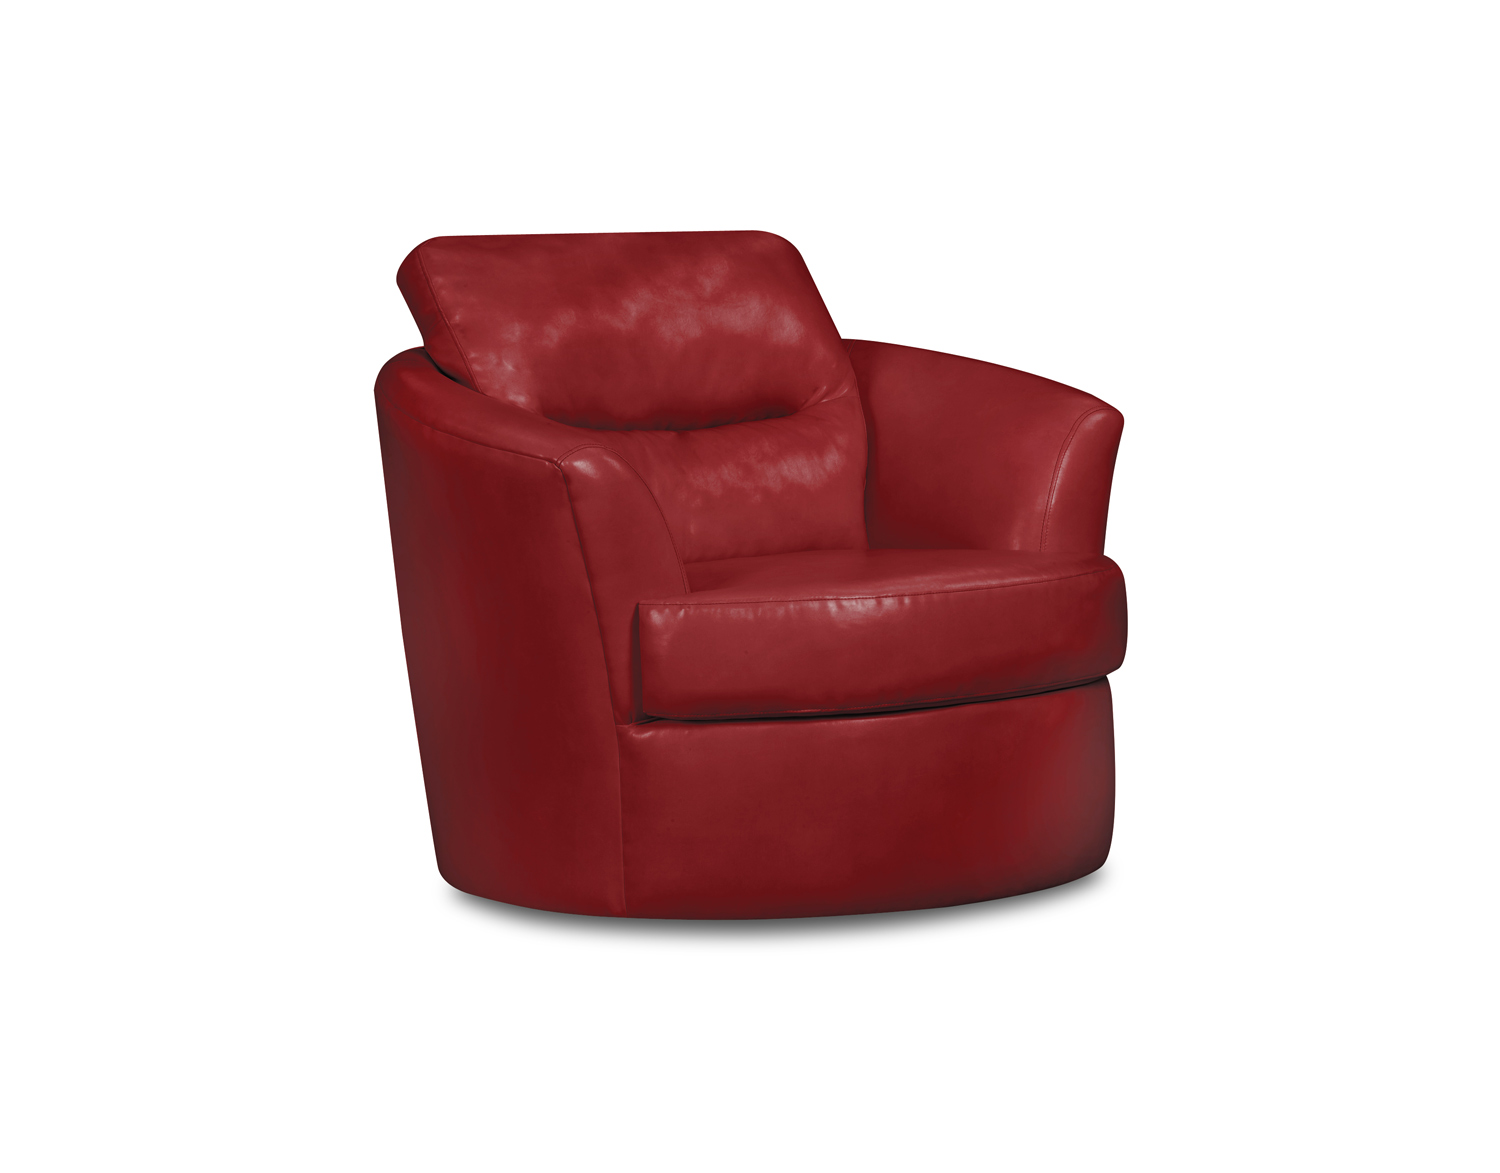 Red Leather Swivel Chair Global Furniture Usa 9500 Swivel Chair Bonded Leather Cardinal